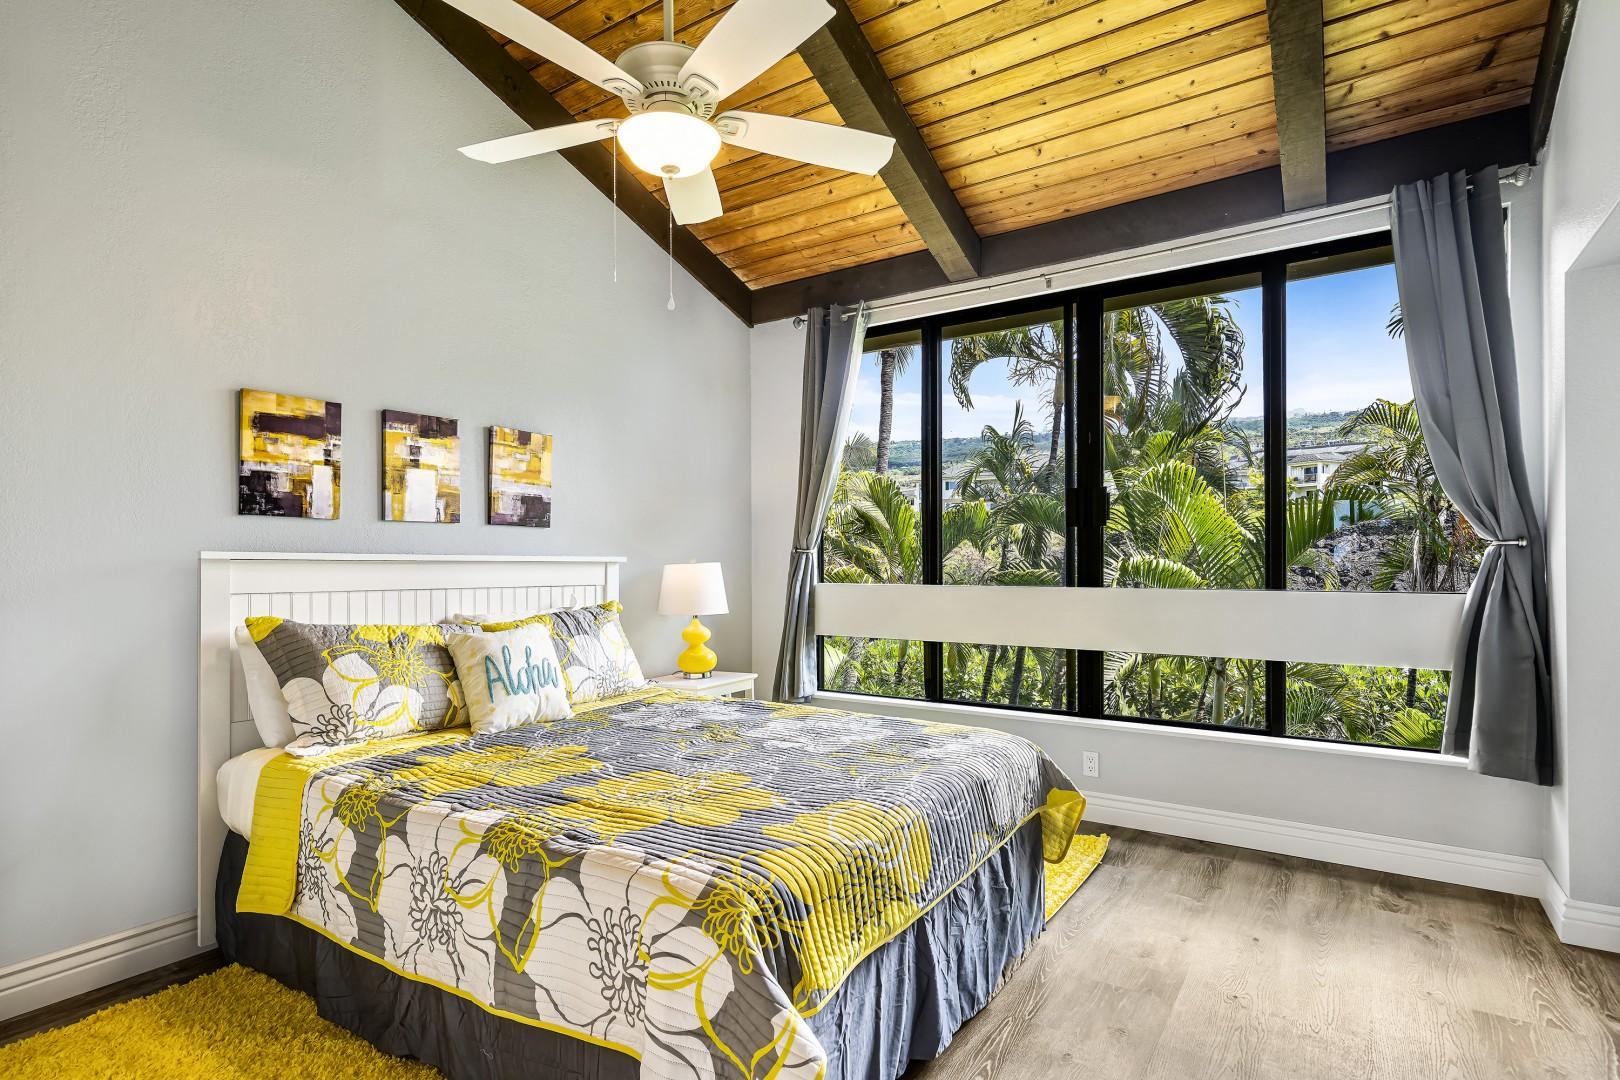 Guest bedroom offering A/C, mountain views, Queen bed, vaulted ceilings and a rejuvenating color scheme